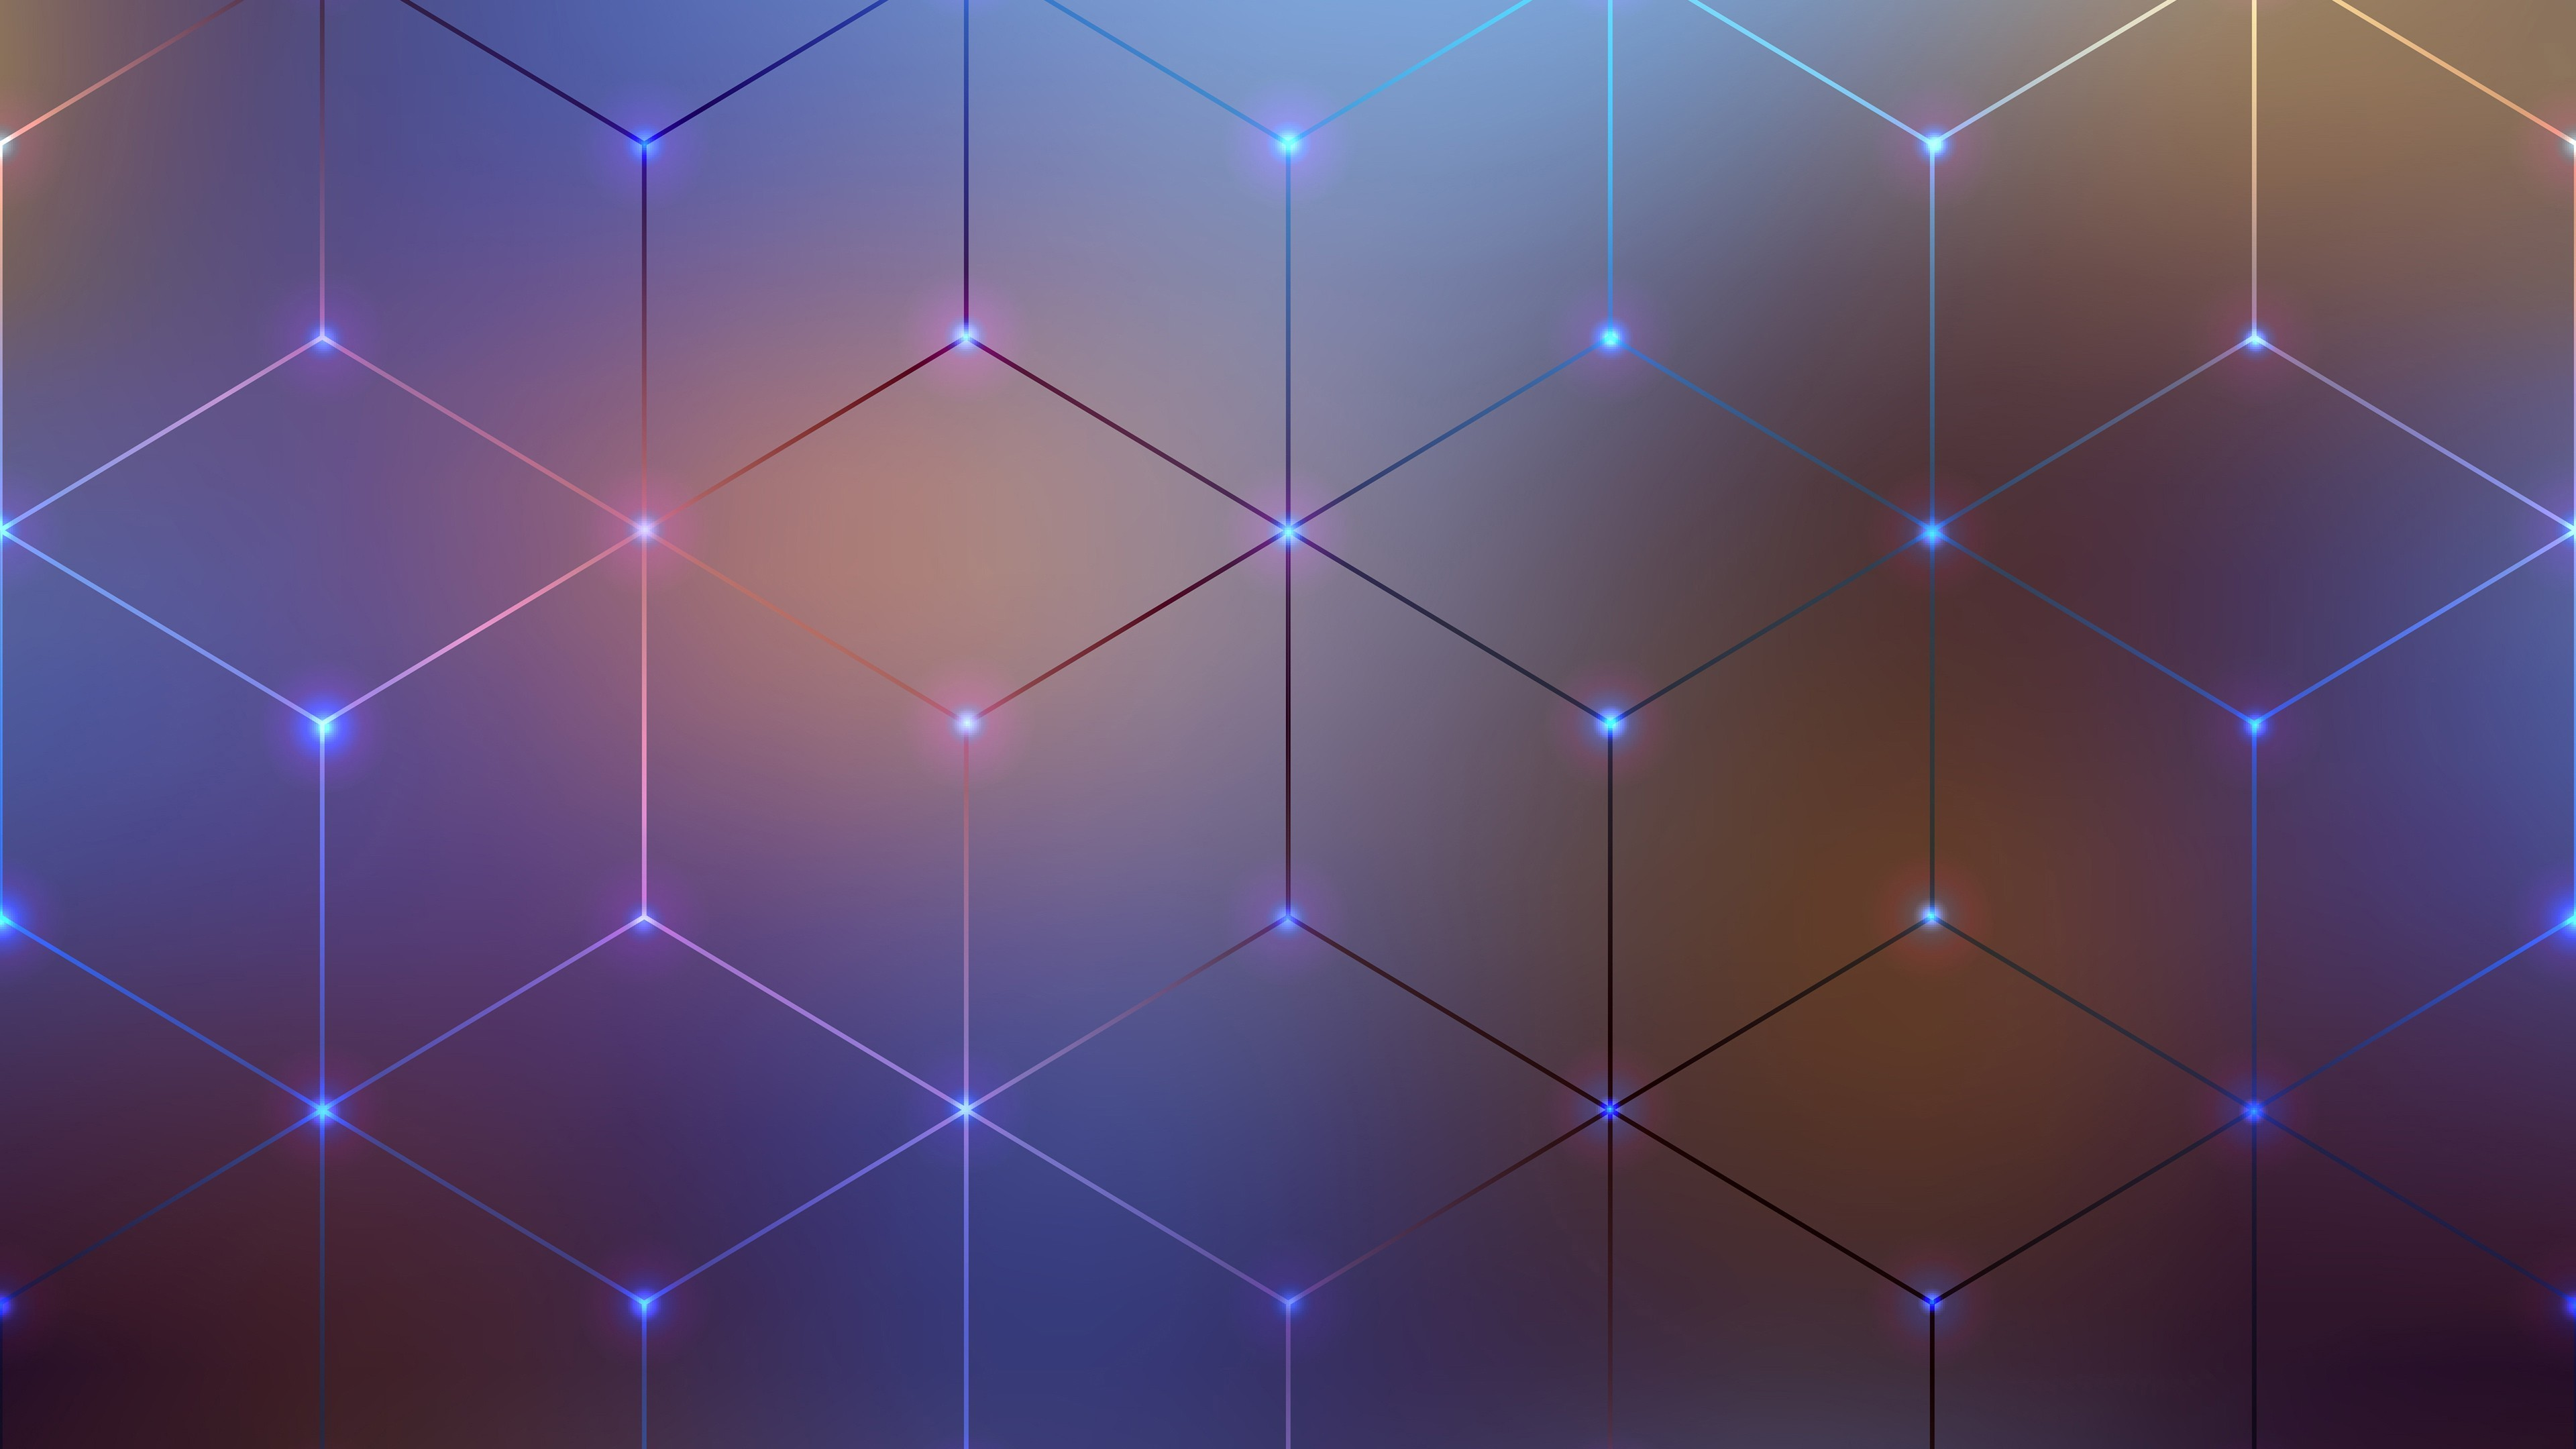 Abstract pattern of geometric shapes 3 d graphics